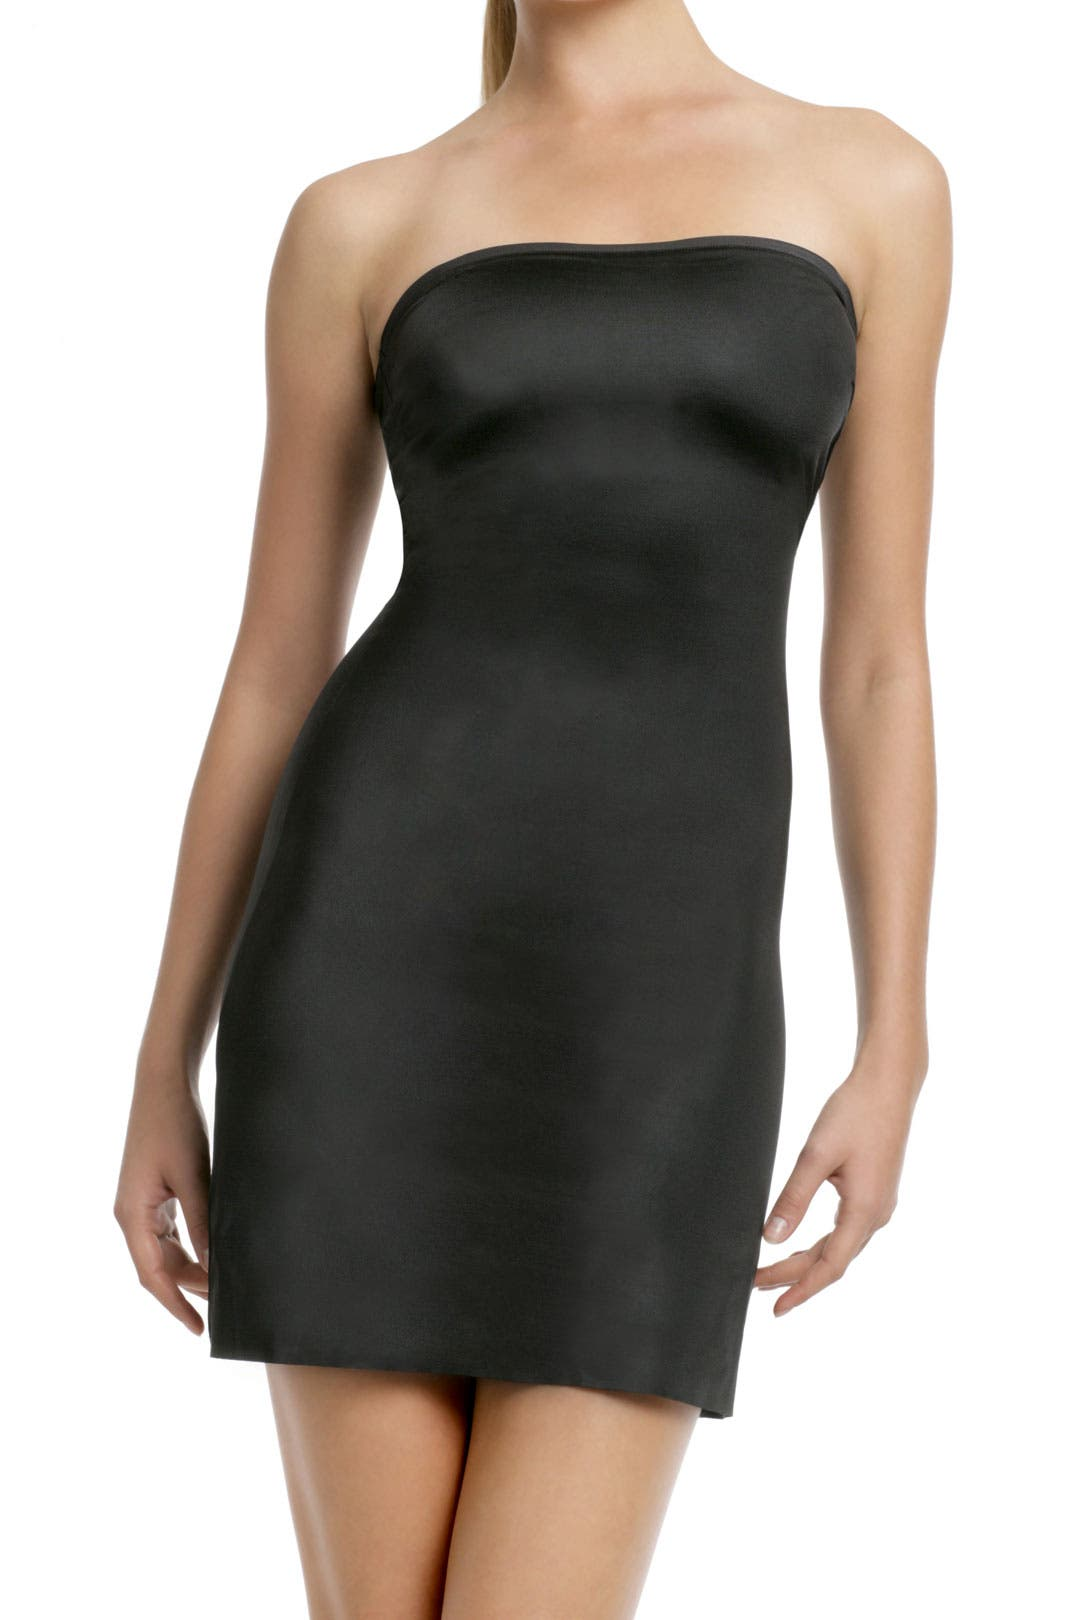 The Simplicity Convertible Full Slip in Black by Spanx